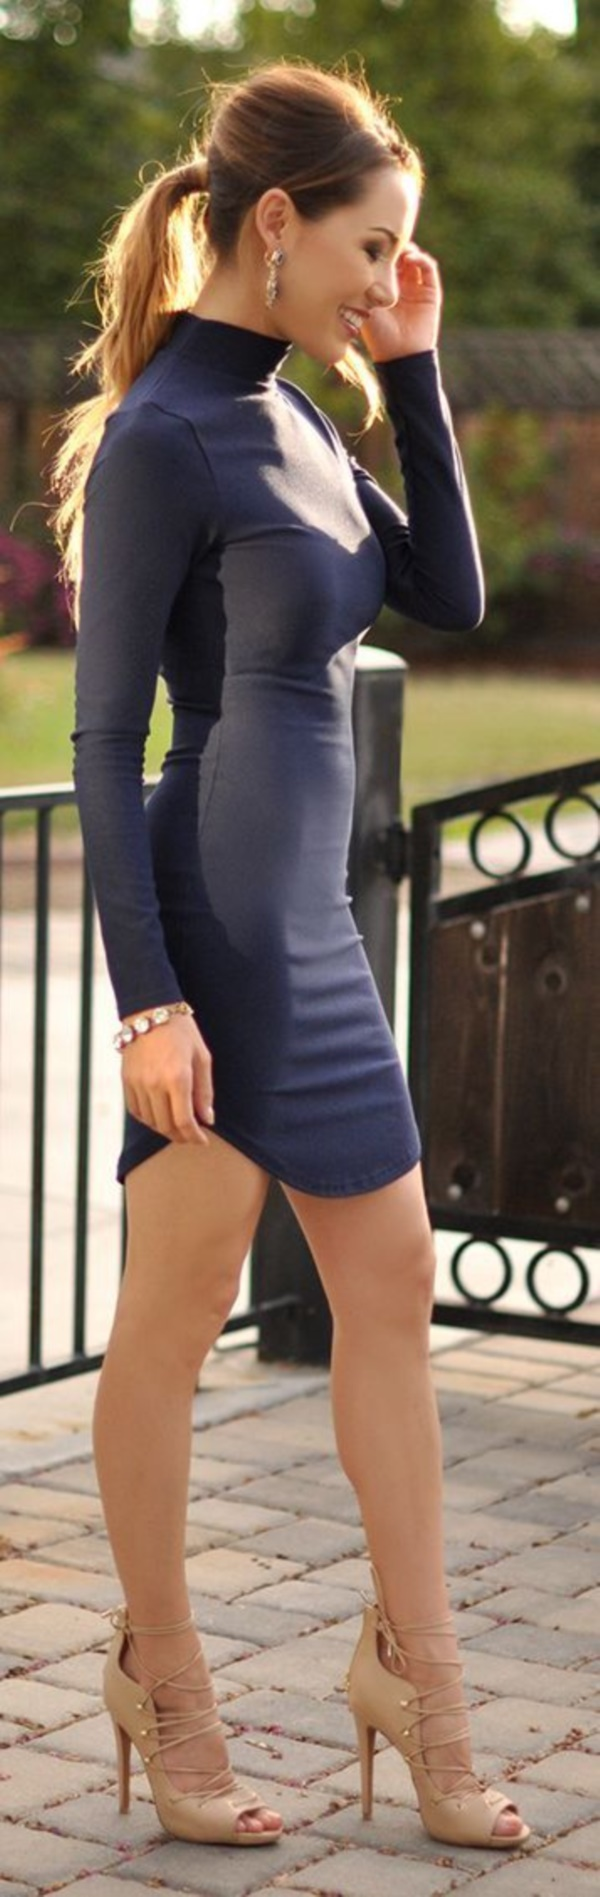 bodycon dress definition (13)